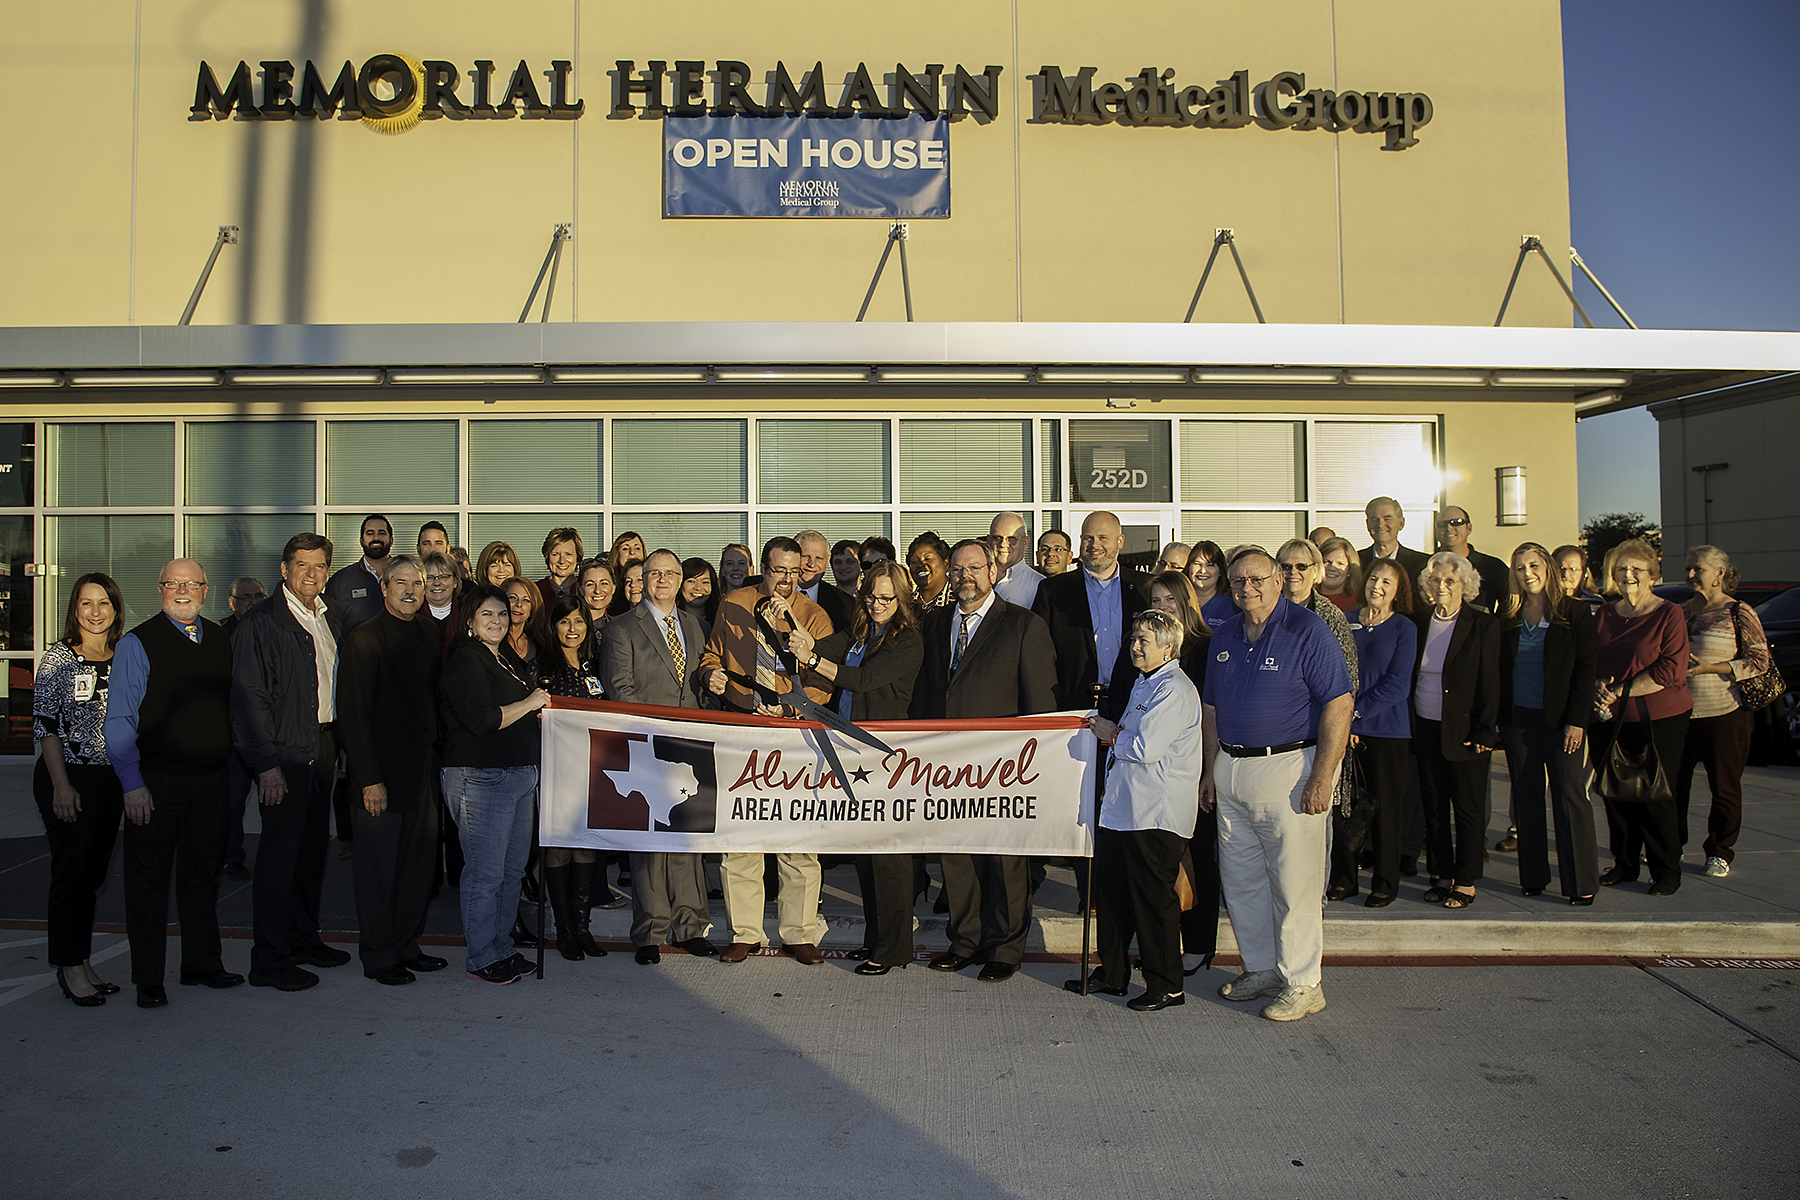 State and Local Leaders Join Memorial Hermann Medical Group